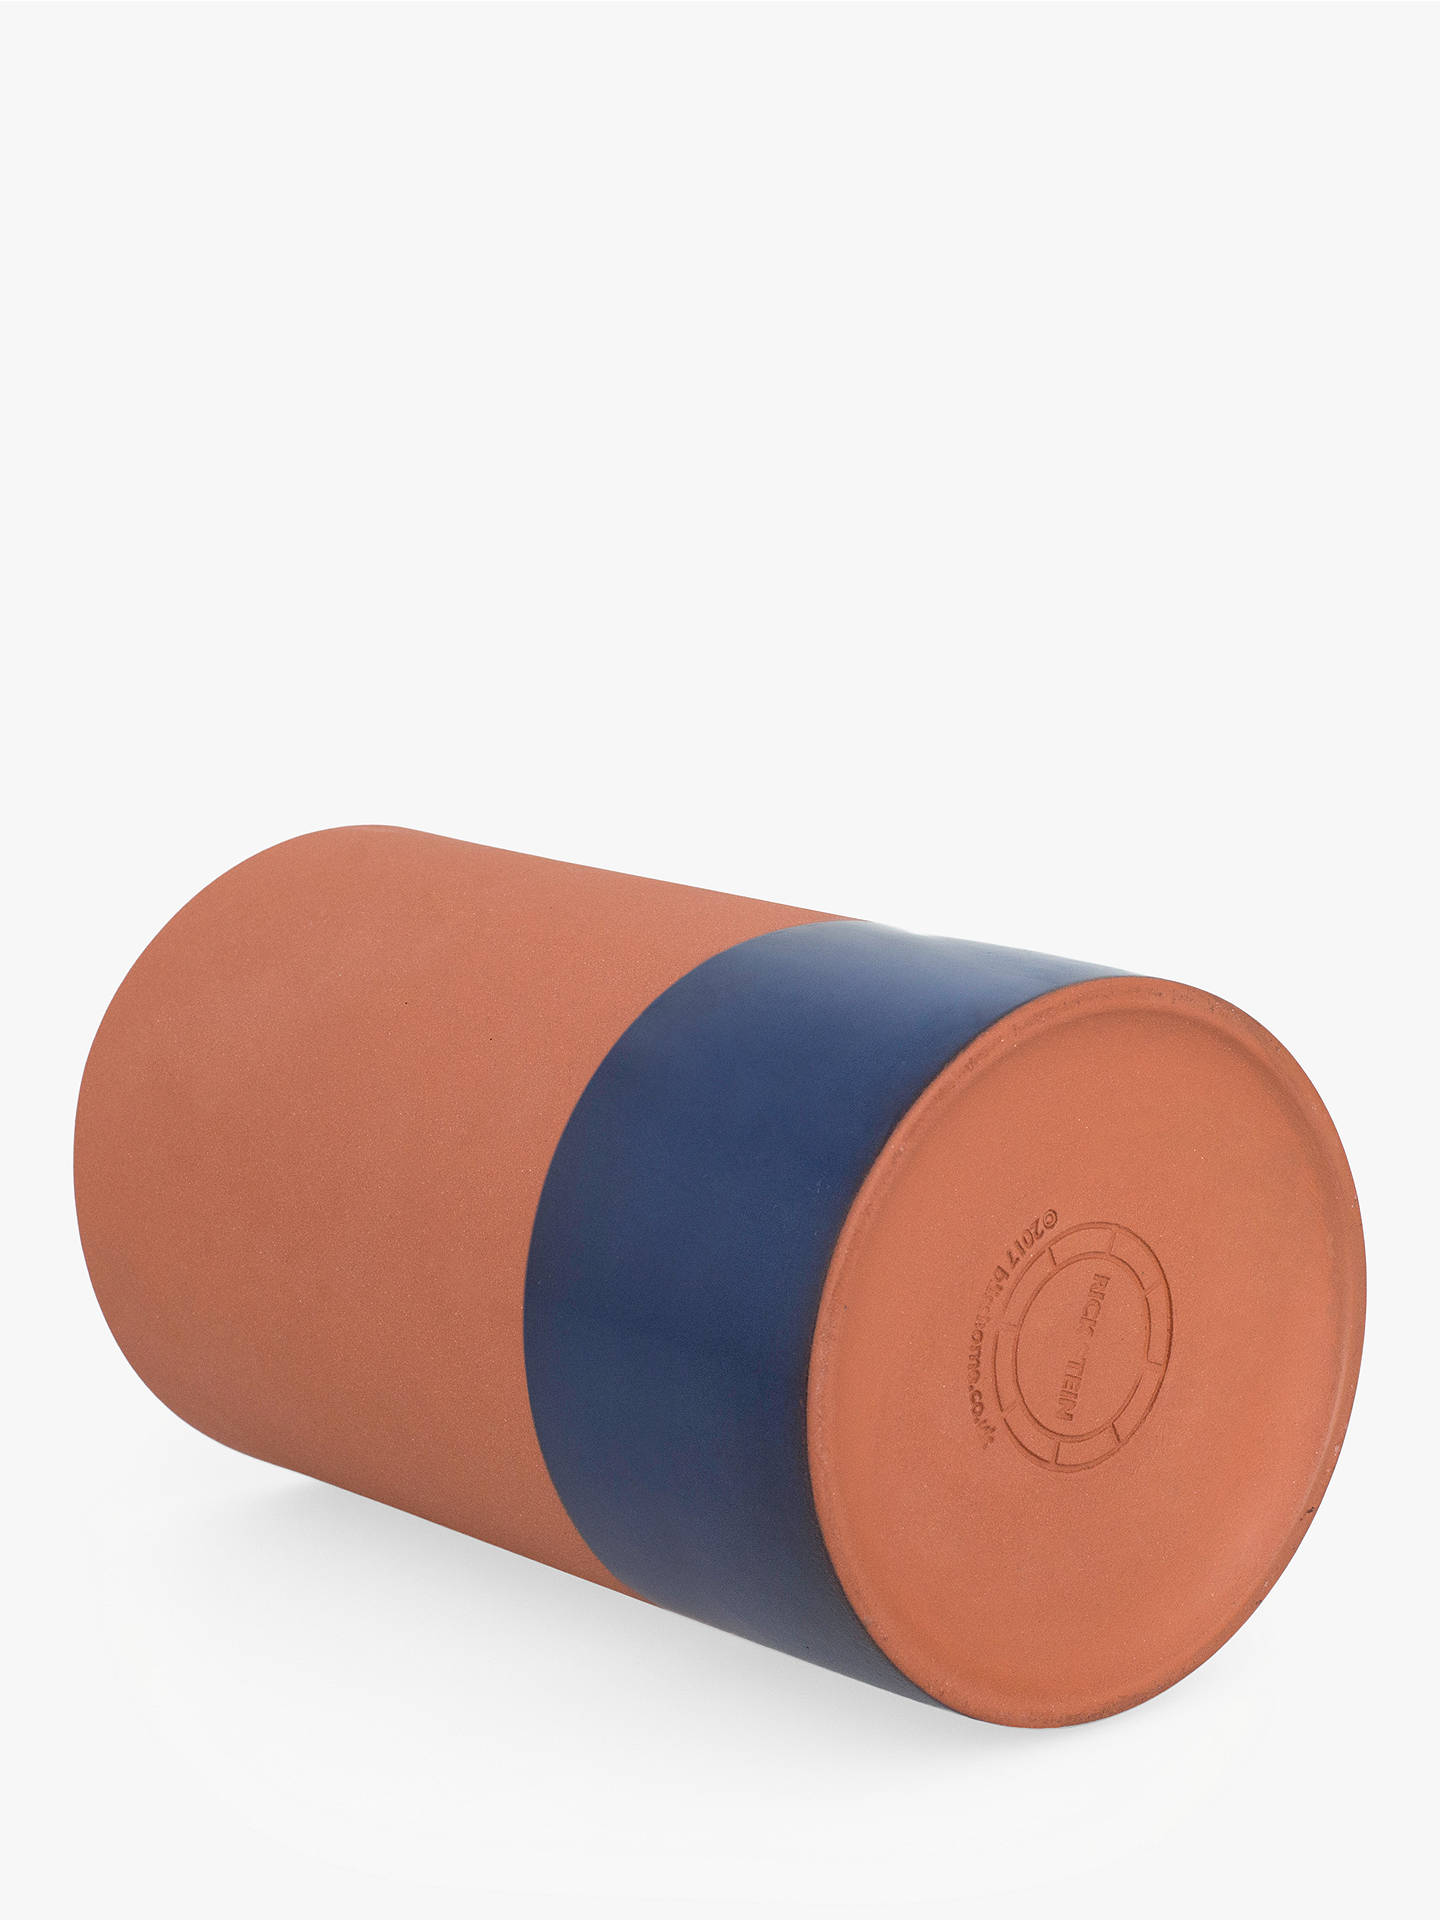 BuyRick Stein Wine Cooler, Terracotta/Blue, Dia.14cm Online at johnlewis.com